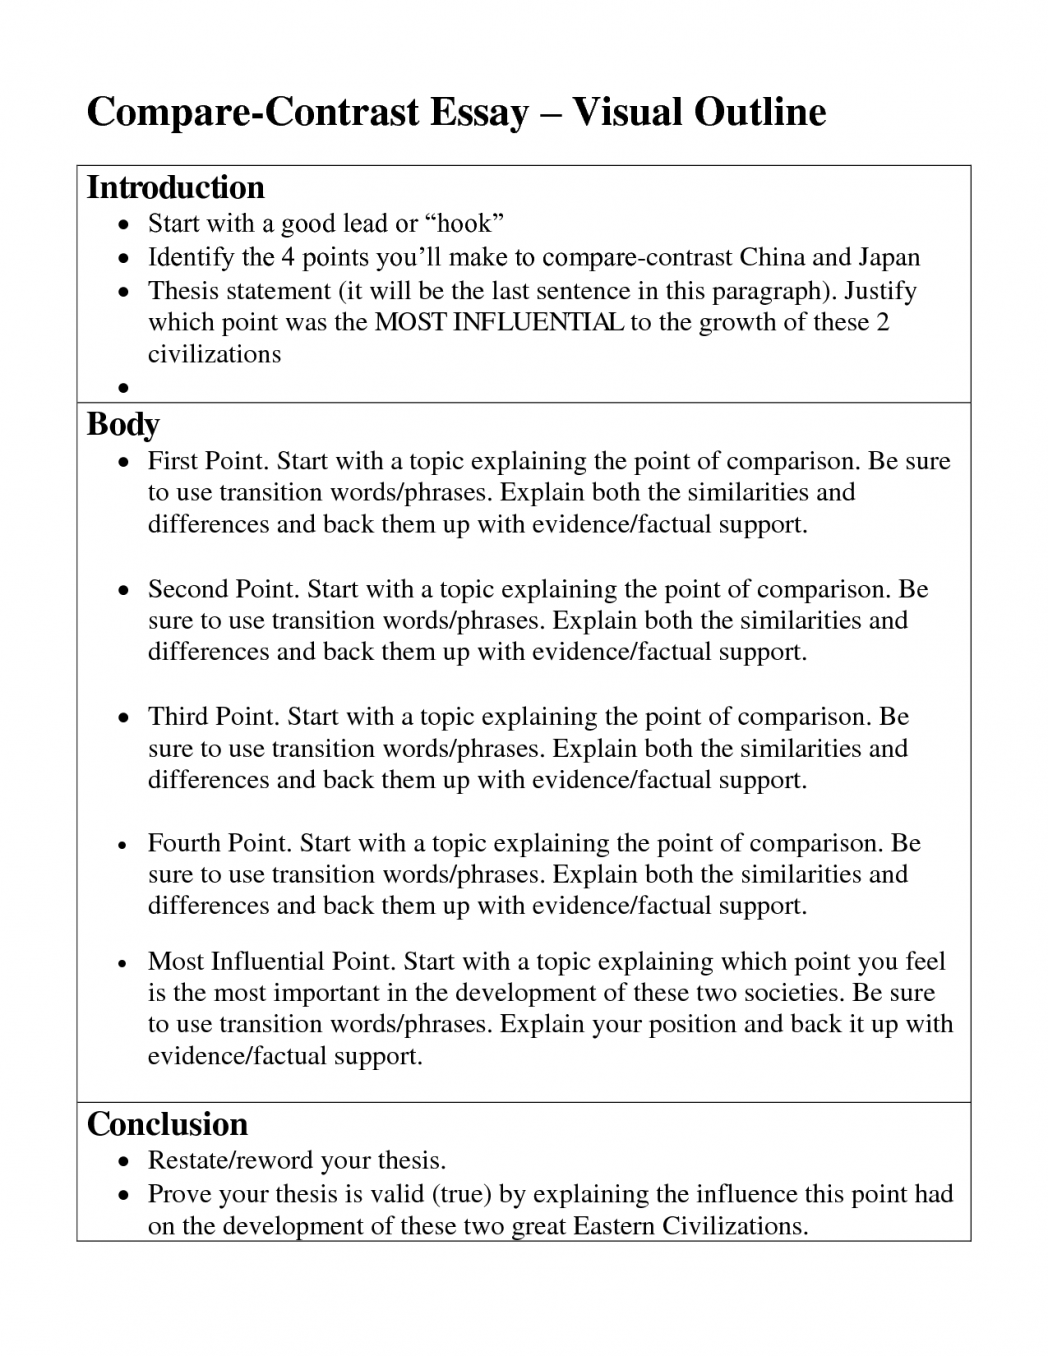 003 Compare And Contrast Essay Topics For High School Students English College Pdf Research Paper 1048x1356 Stupendous Examples Middle Full